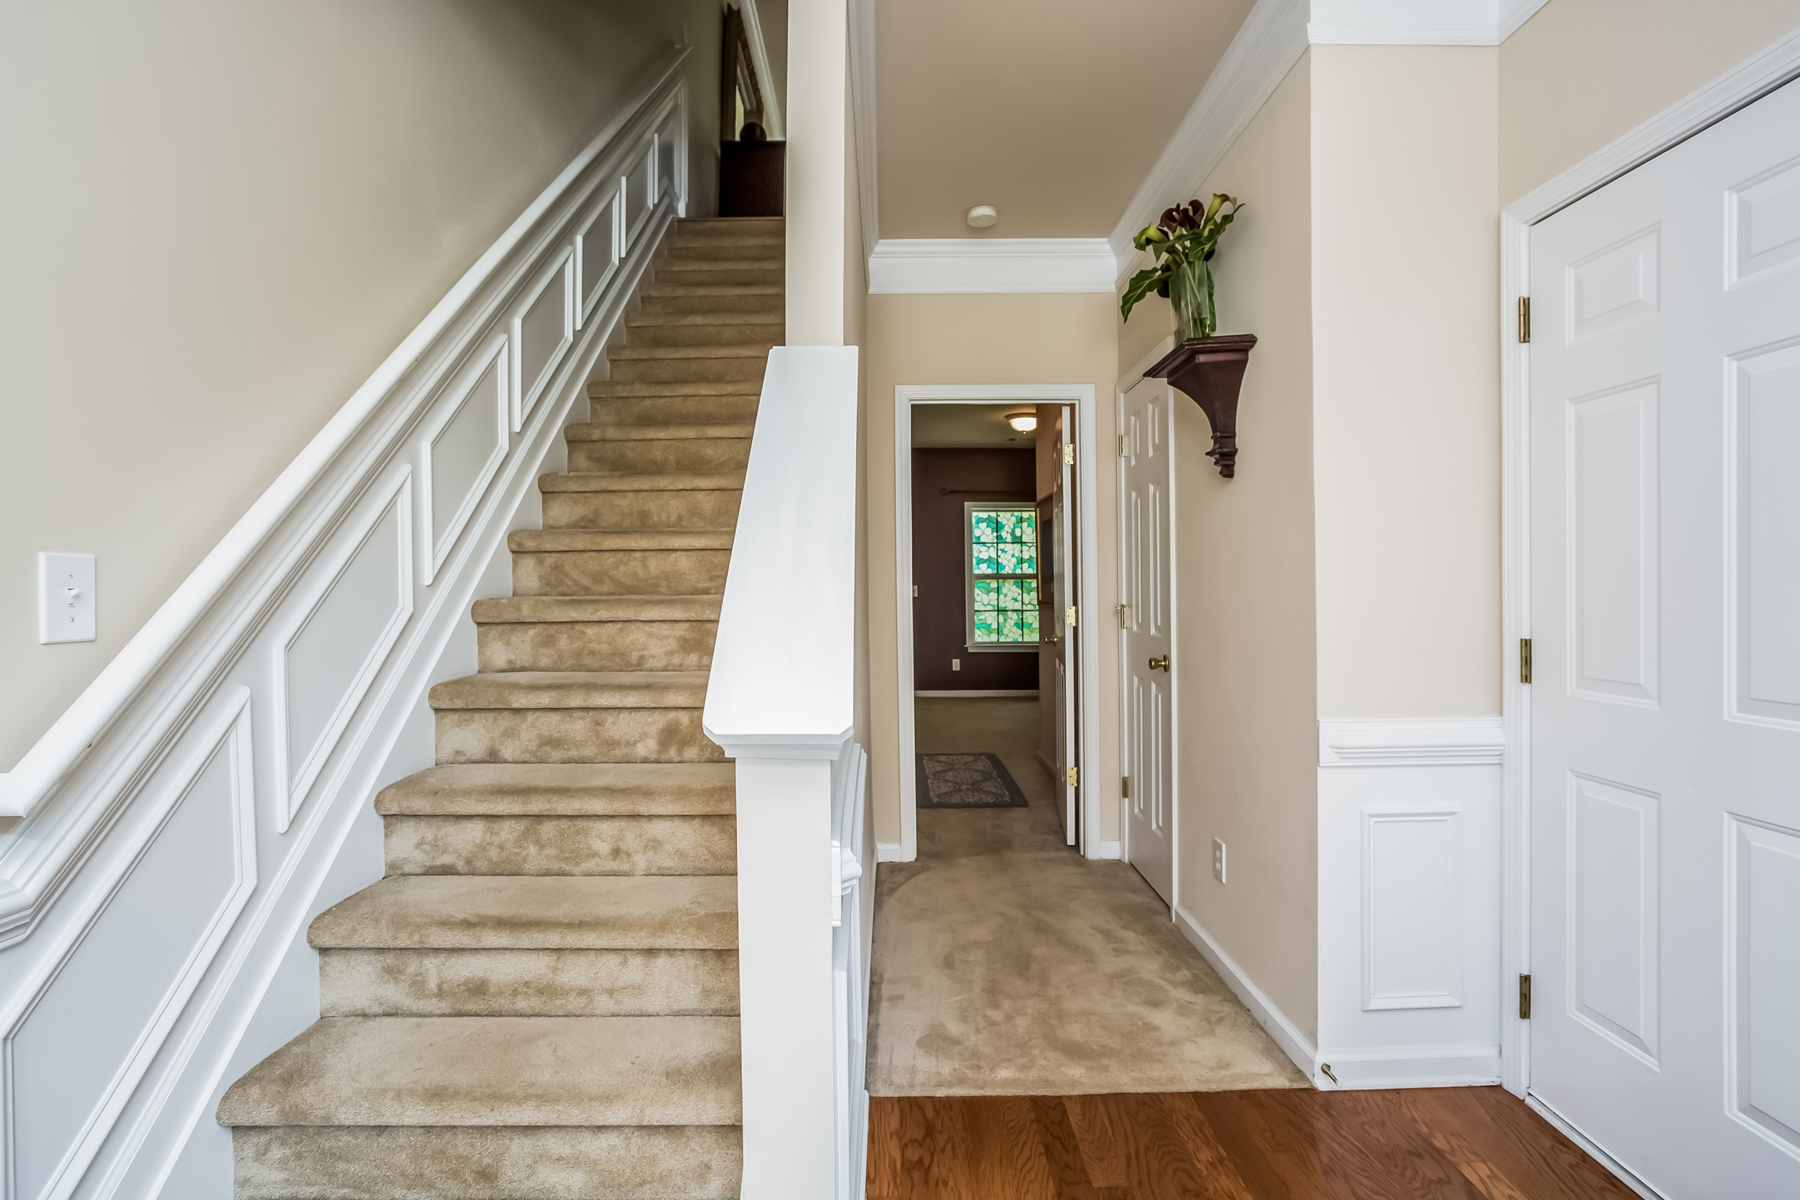 Additional photo for property listing at Multi-level Townhome In A Beautiful Community 5117 Wellsley Bend Alpharetta, Georgië 30005 Verenigde Staten